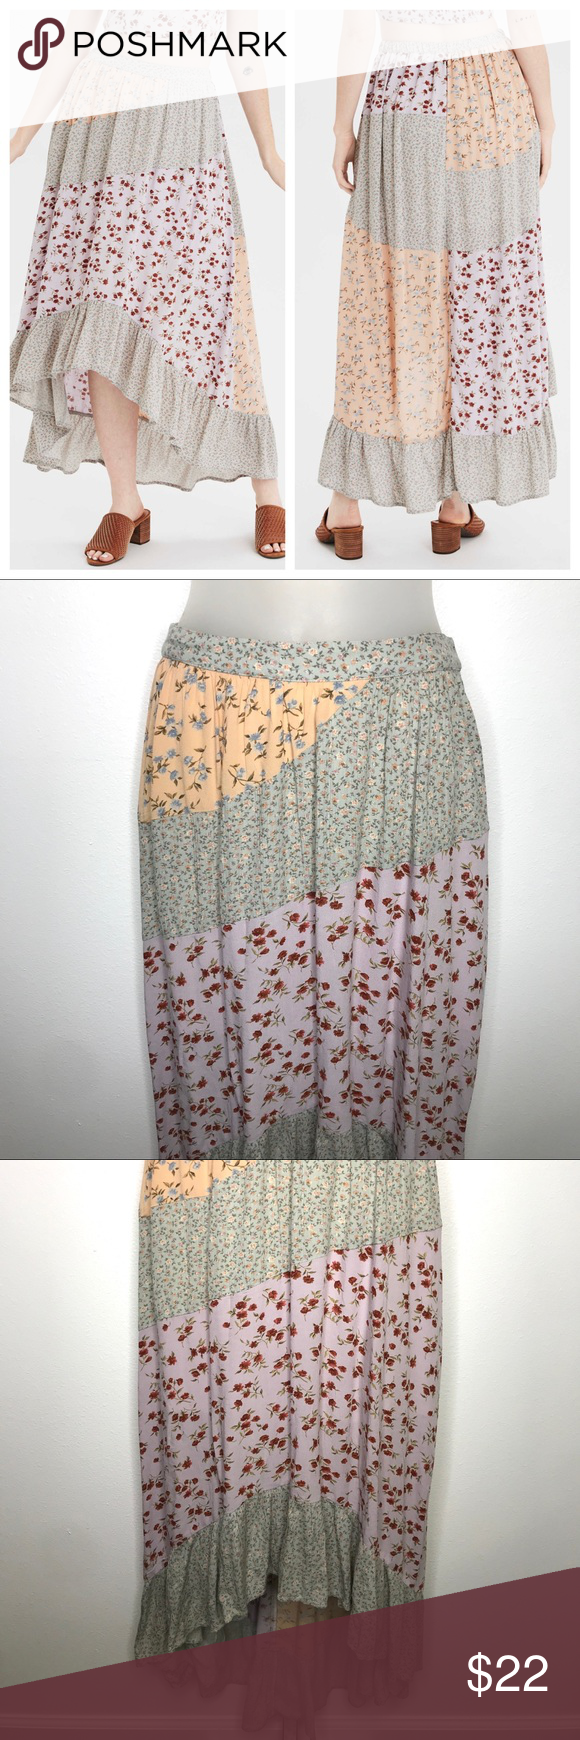 """American Eagle High Waisted Patchwork Midi Skirt S Excellent condition! Absolutely no rips, tears or stains! Made from a lightweight fabric, print mix. Style 0317-2863. Sold out in this size online!  100% viscose. Machine wash.   Flat Measurements: Length - 26""""-42"""" (hi-low) Waist - 13""""-16"""" (relaxed to extended)  No modeling. No trades. American Eagle Outfitters Skirts Midi"""